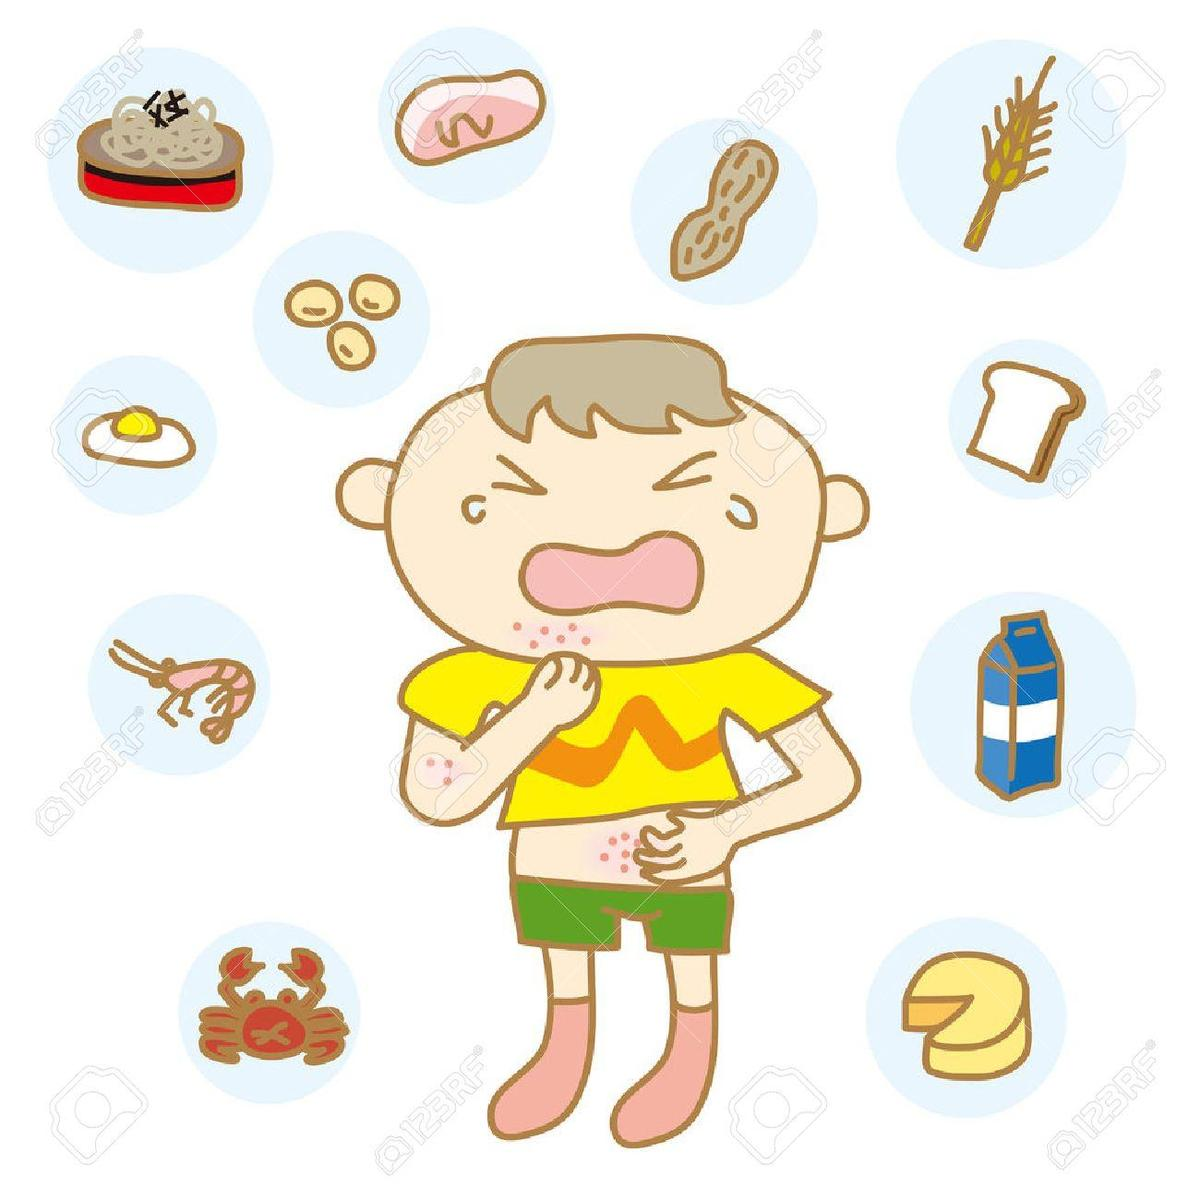 Library Of Allergy List For Children Royalty Free